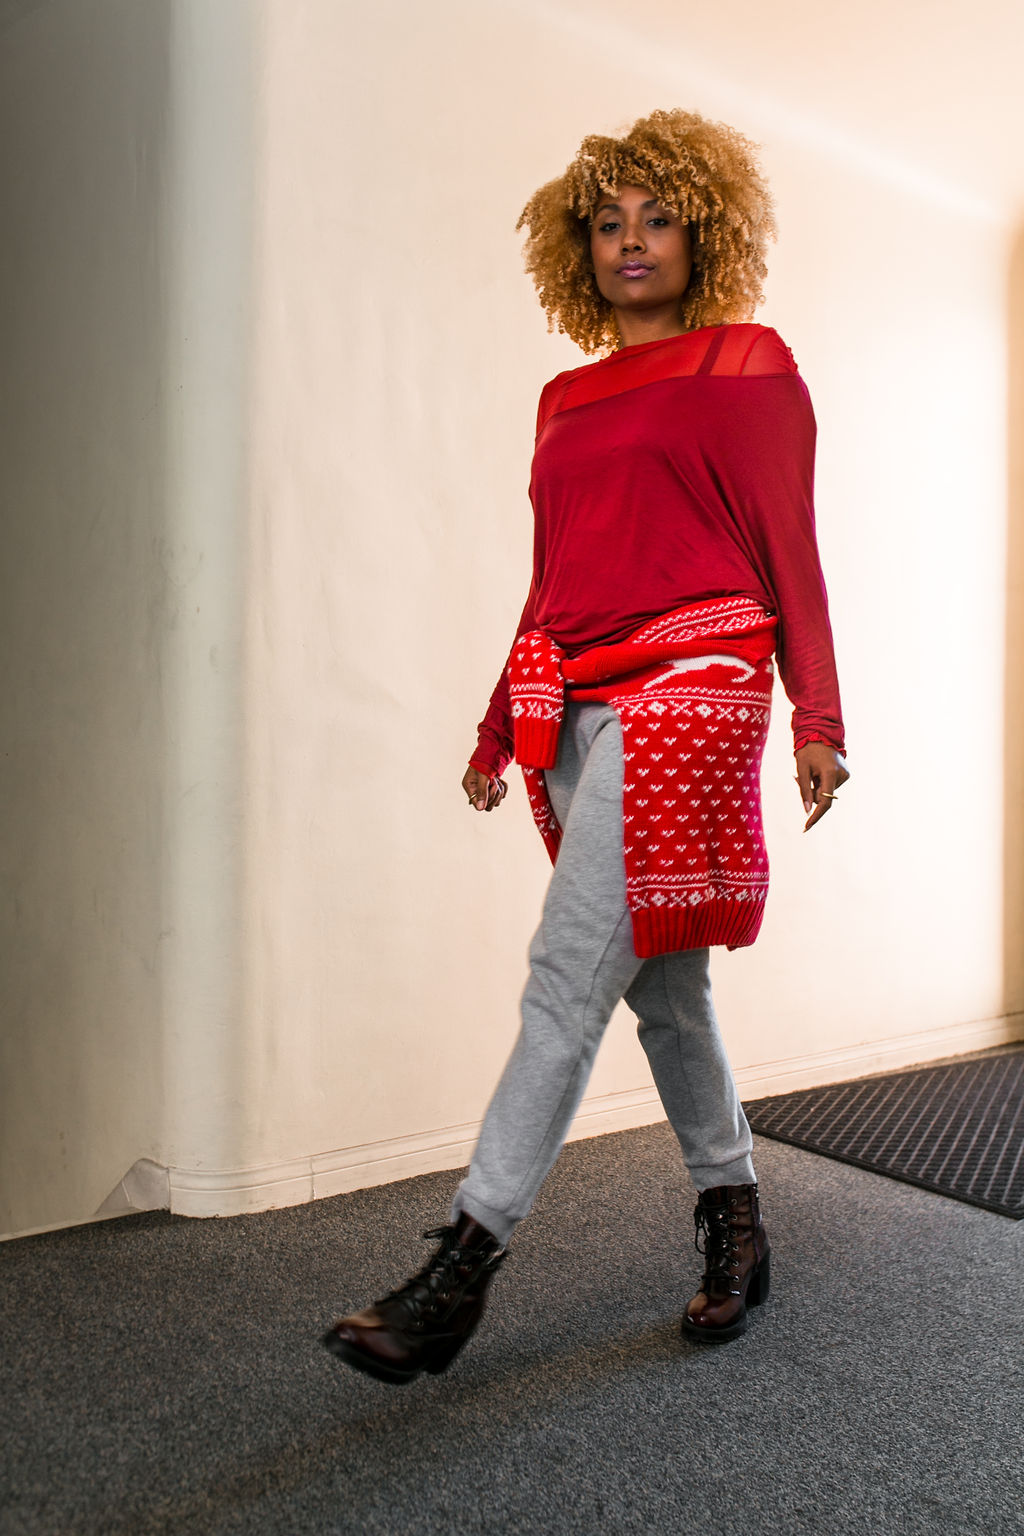 RSEE-LCM-Liveclothesminded-xmmtt-longbeach-2523-ugly christmas sweater-christmas-outfit